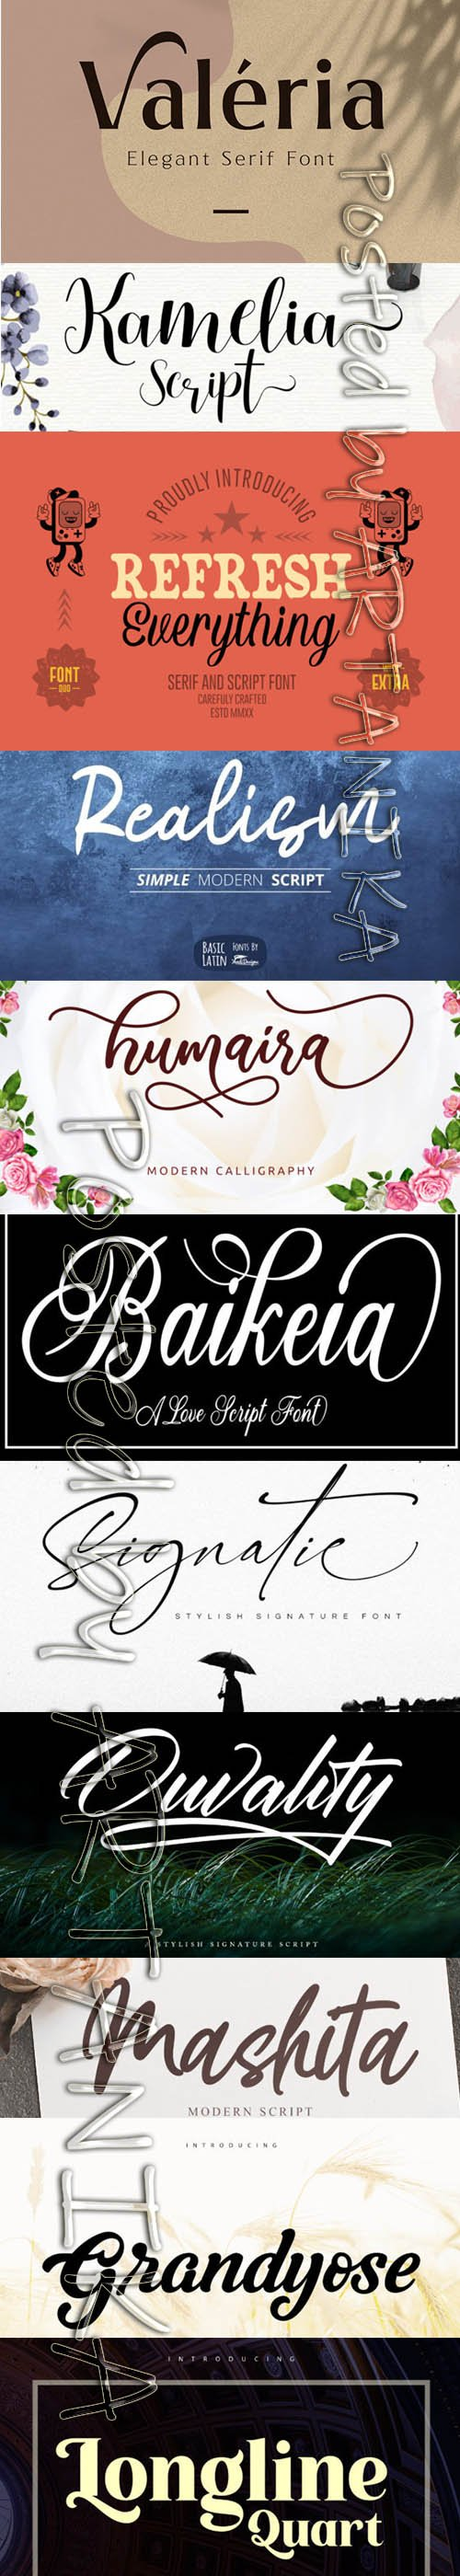 Collection of 11 Creative Fresh Fonts 2020 Vol 4